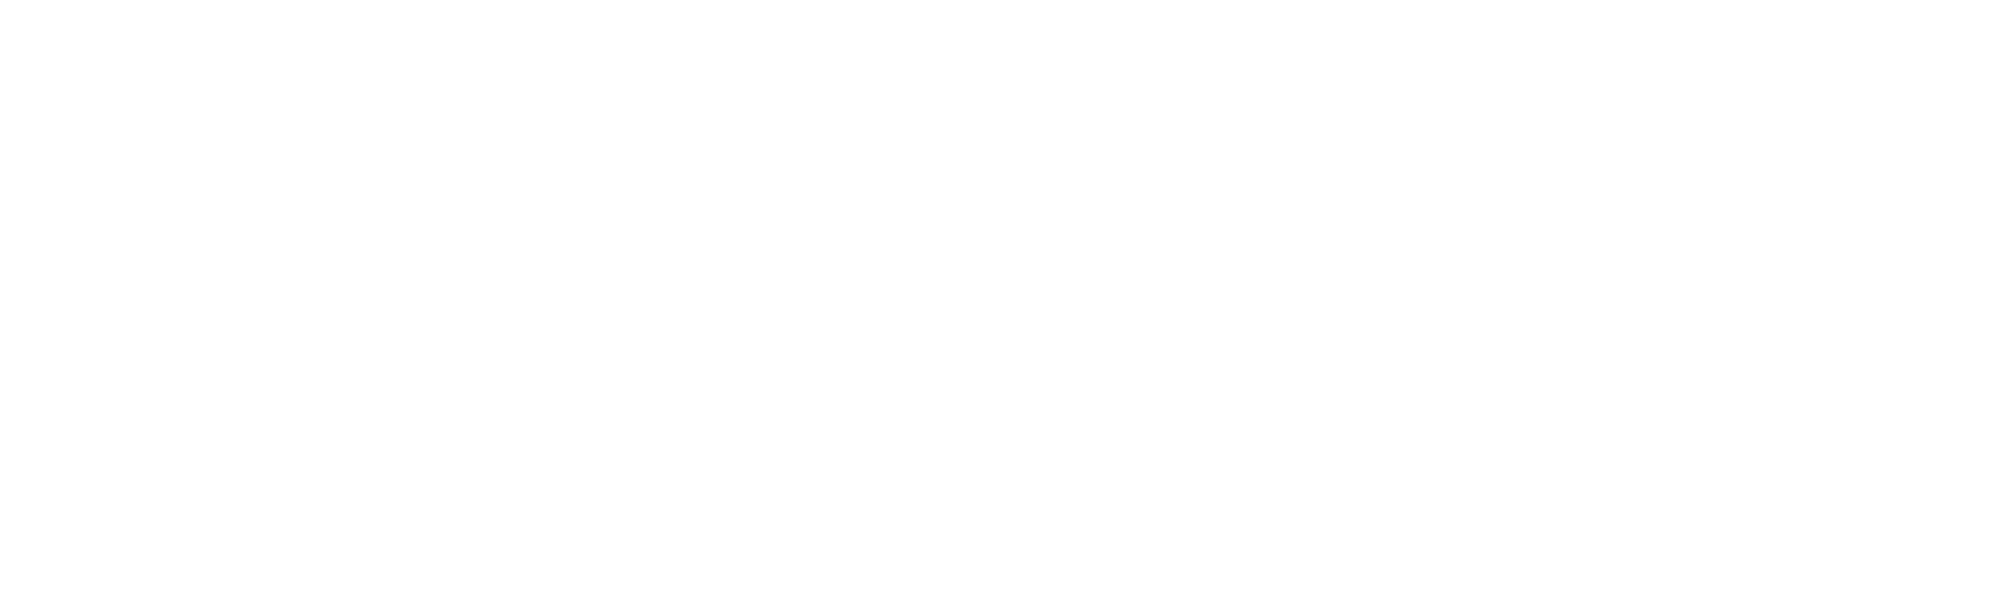 logo_v3_Incorporated.png